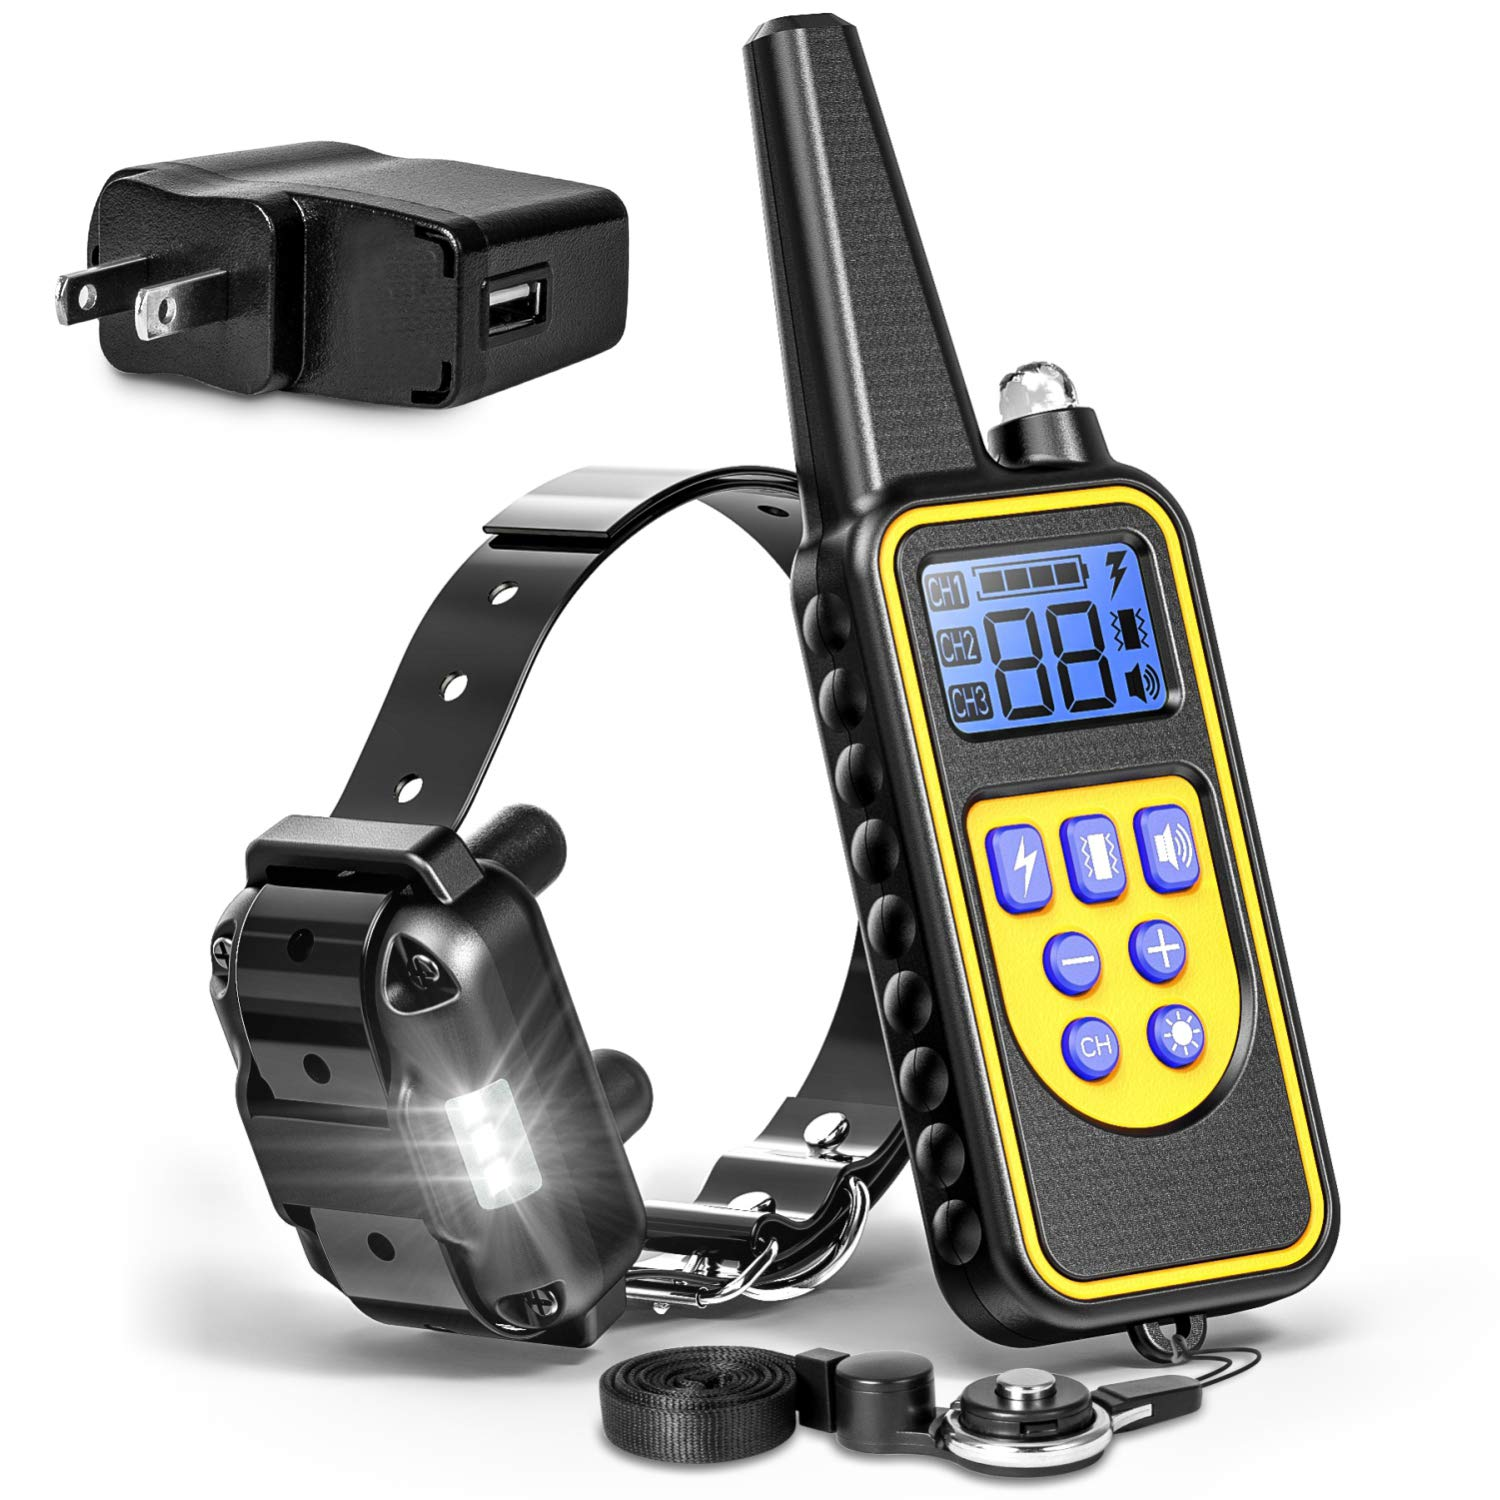 F-color Dog Training Collar, Rechargeable Waterproof Dog Shock Collar for Dogs with Remote 2600ft,with Beep Vibrating Shock LED Light 4 Modes for Small Medium Large Dogs, Black by F-color